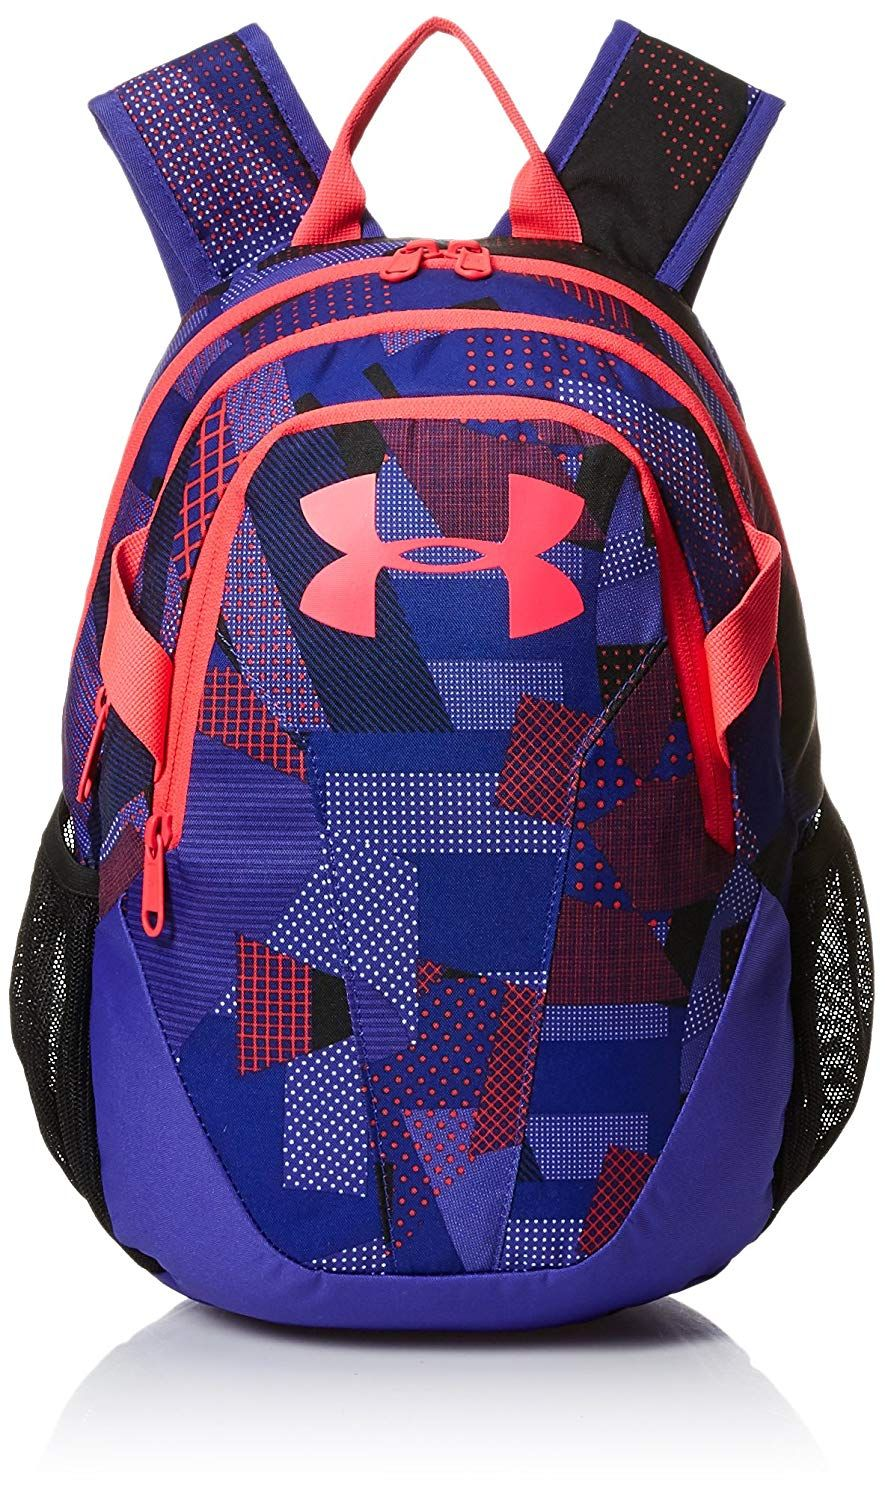 f45210352cc4 Under Armour Unisex Kids  Medium Fry Backpack